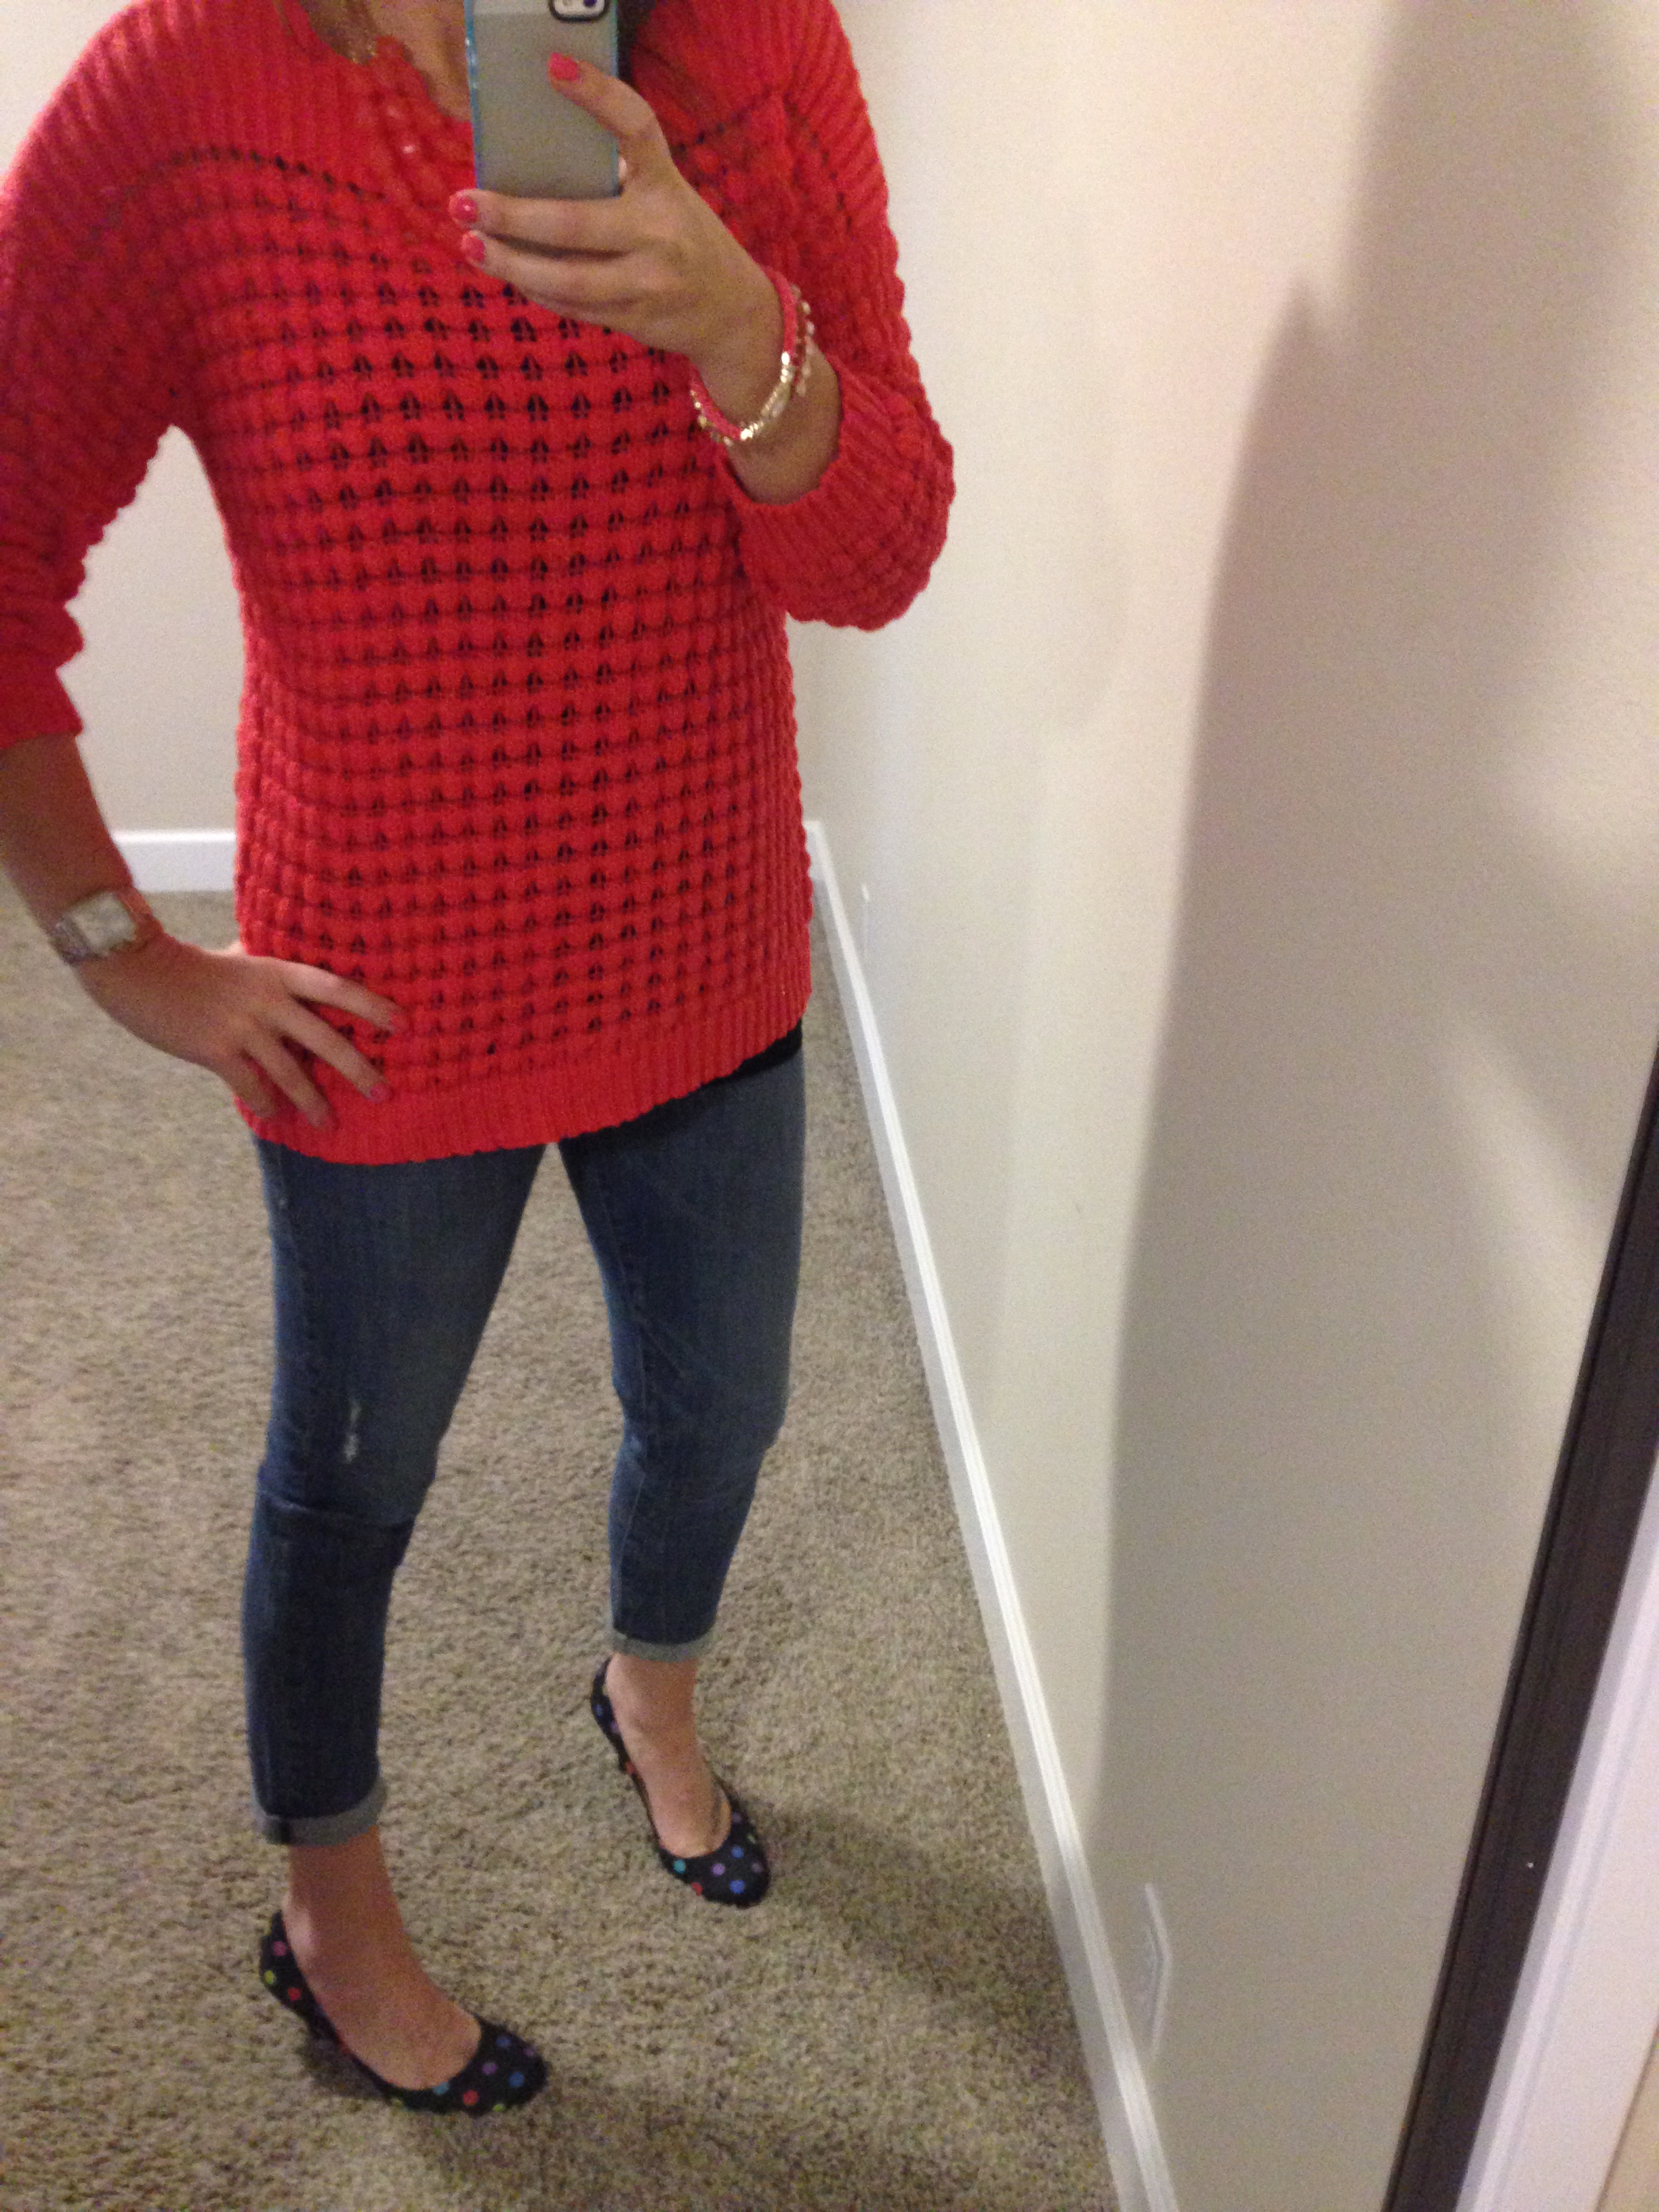 Sweater: Apt. 9; Jeans: Rock & Republic; Pumps: Nine West; Jewelry: Forever 21; Watch: Michele